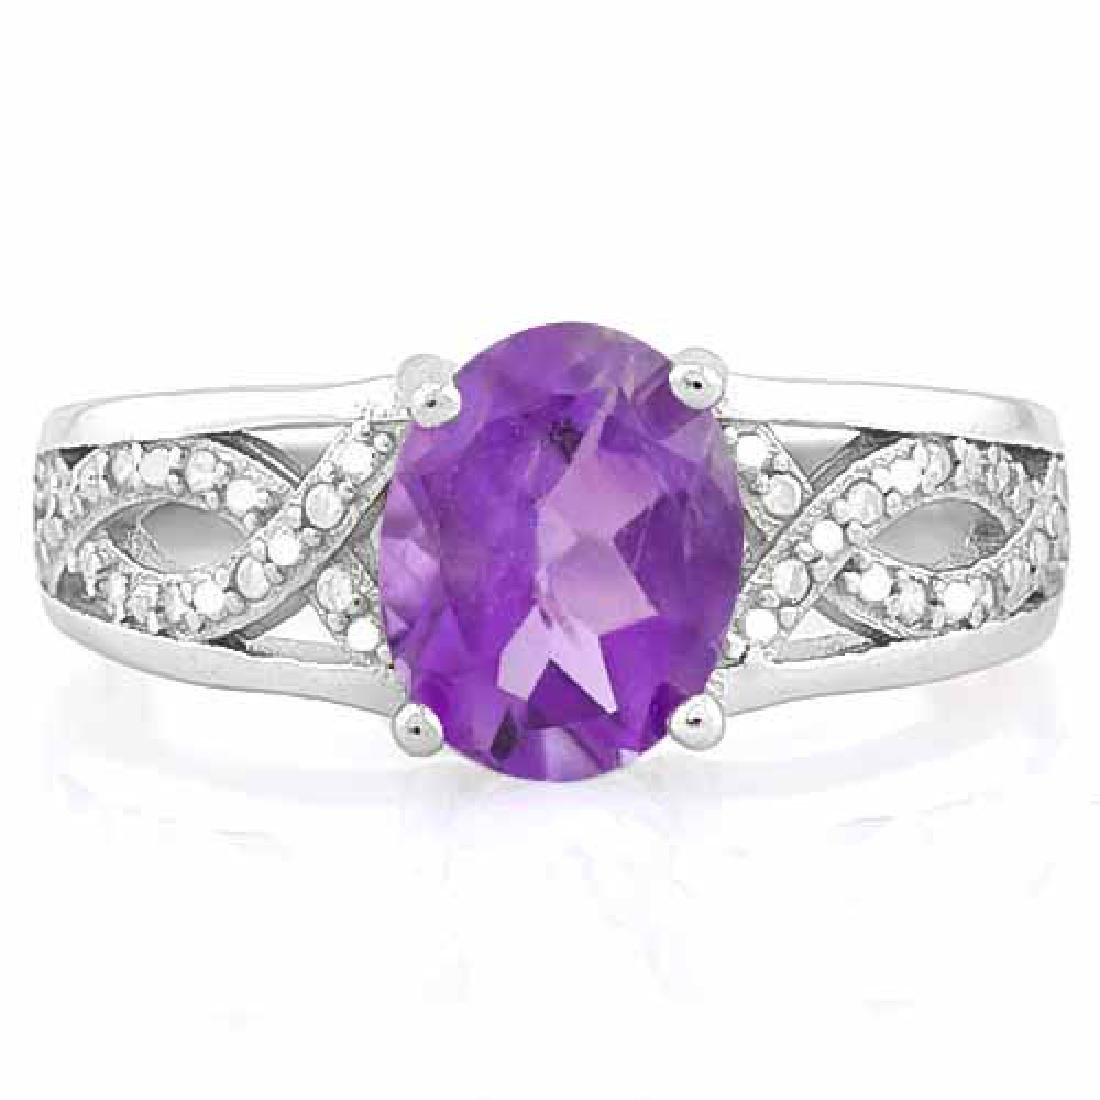 1.67 CARAT AMETHYST & (9 PCS) CREATED DIAMOND 925 STERL